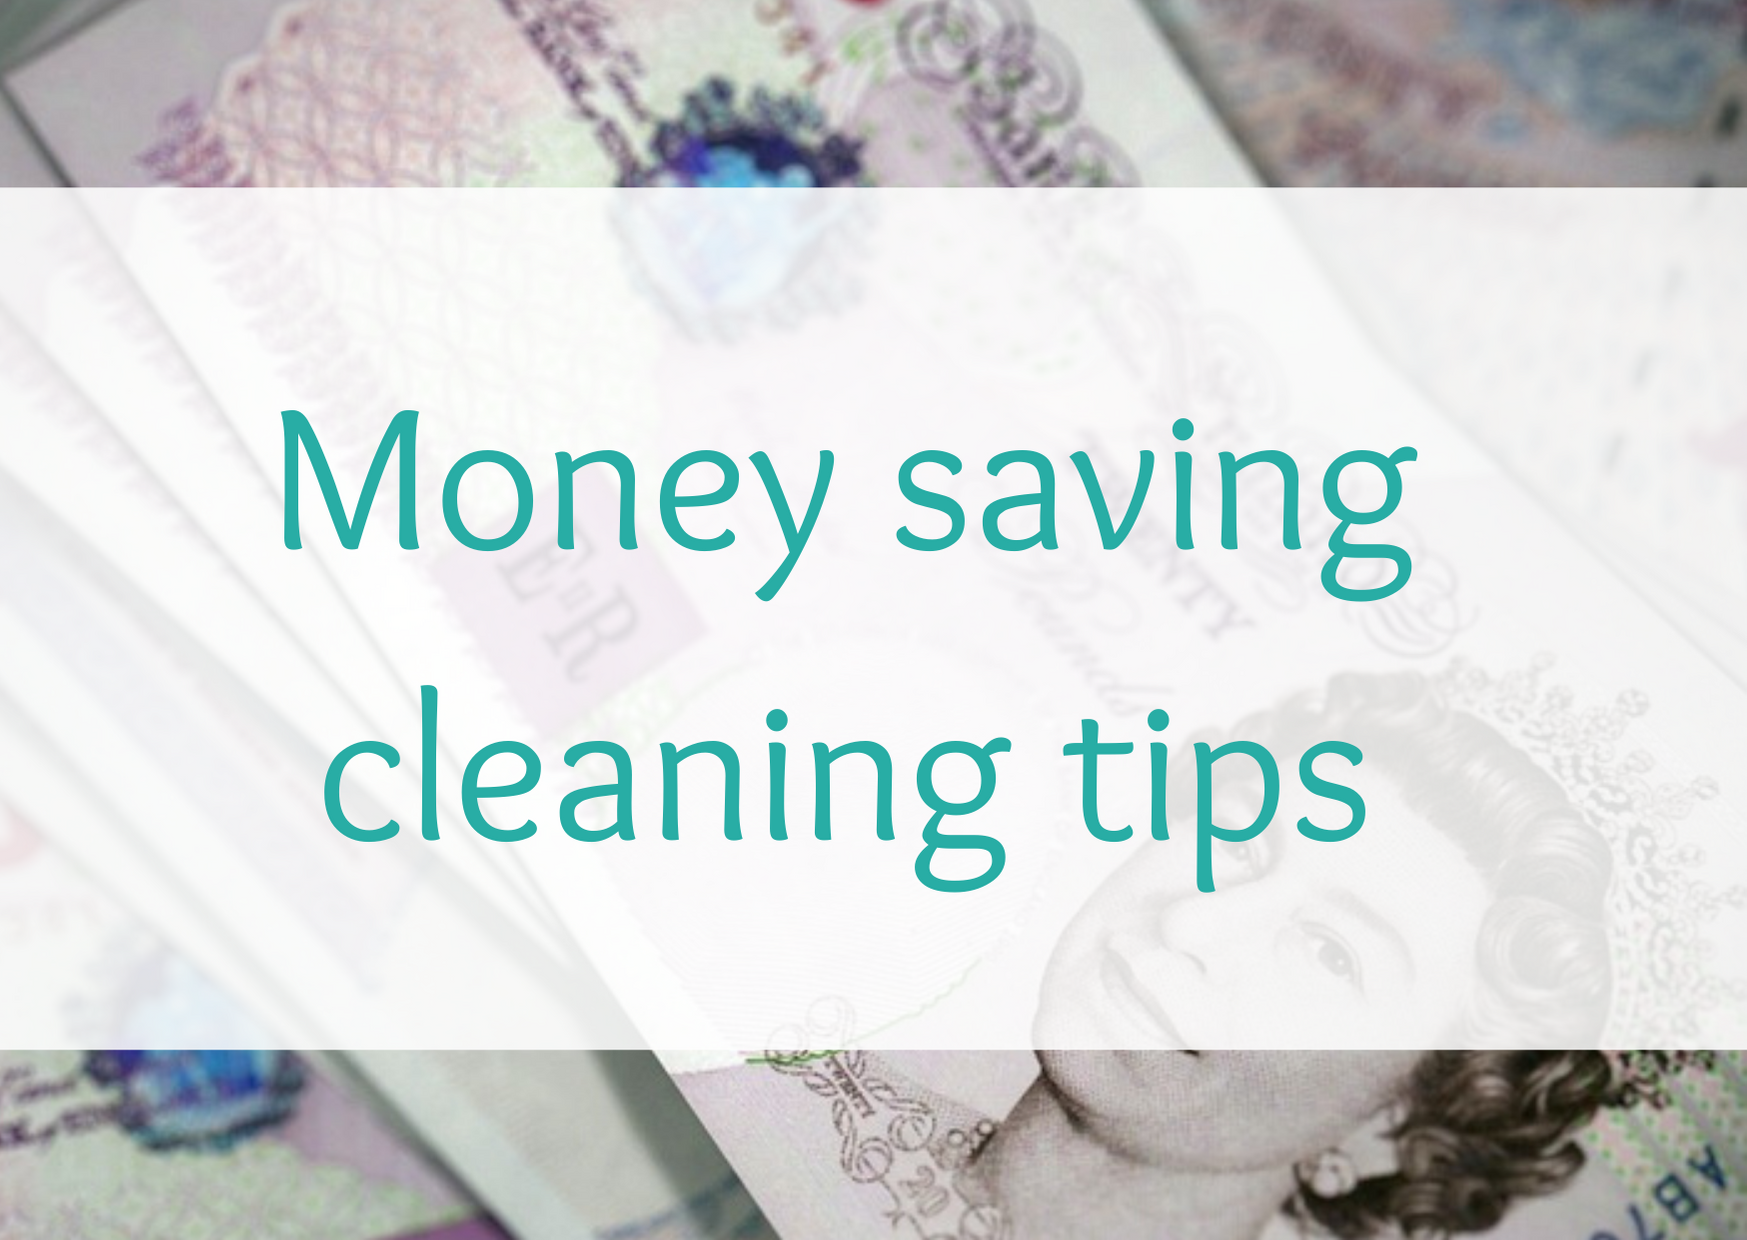 Money saving cleaning tips